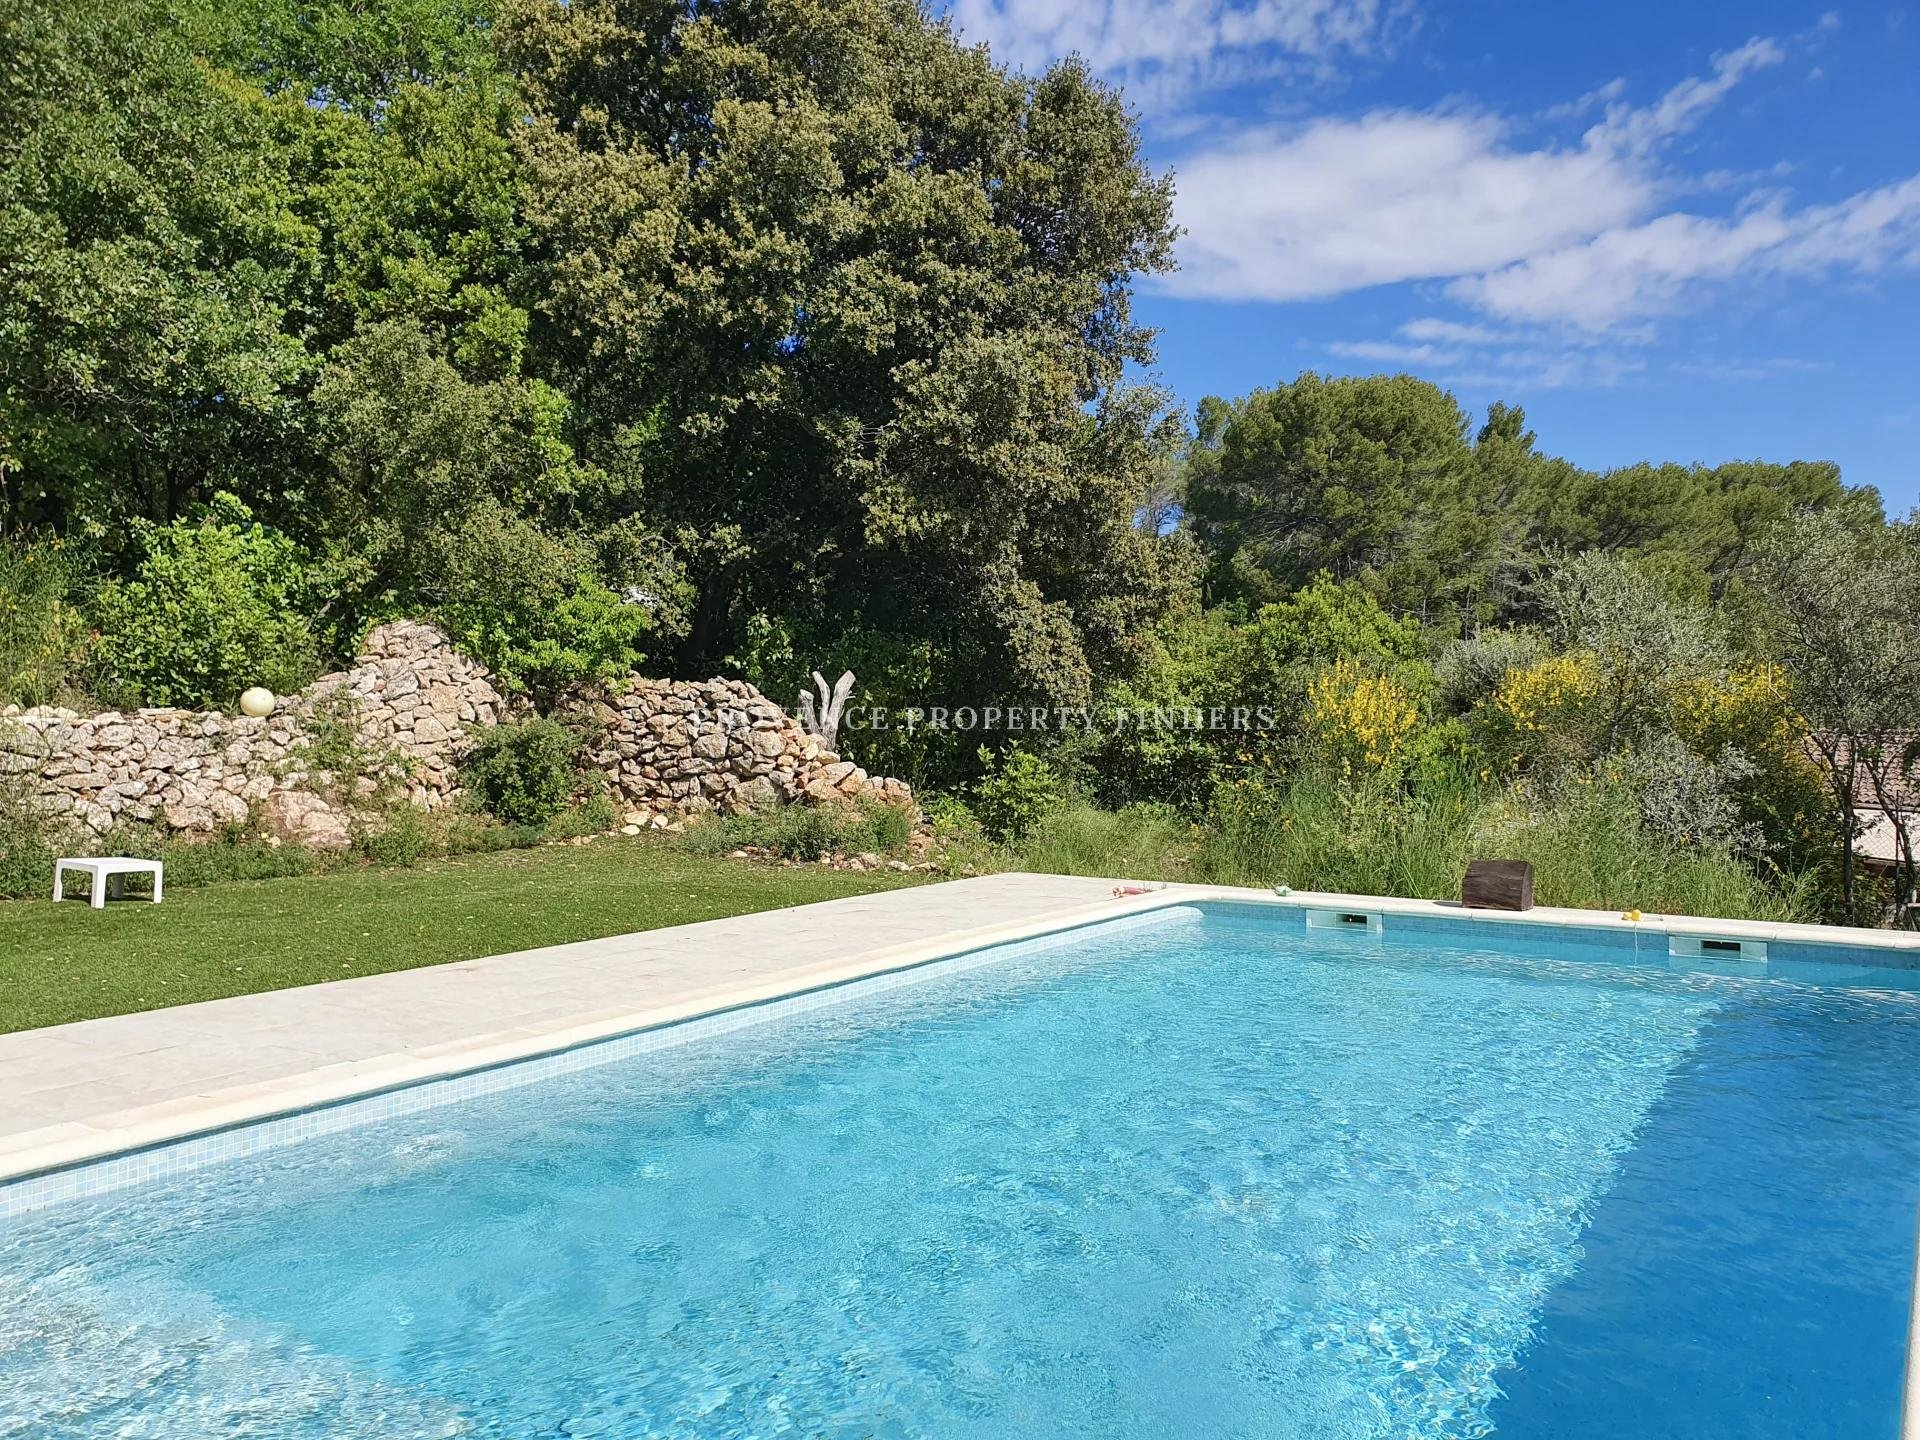 Villa situated not far from Lorgues Village